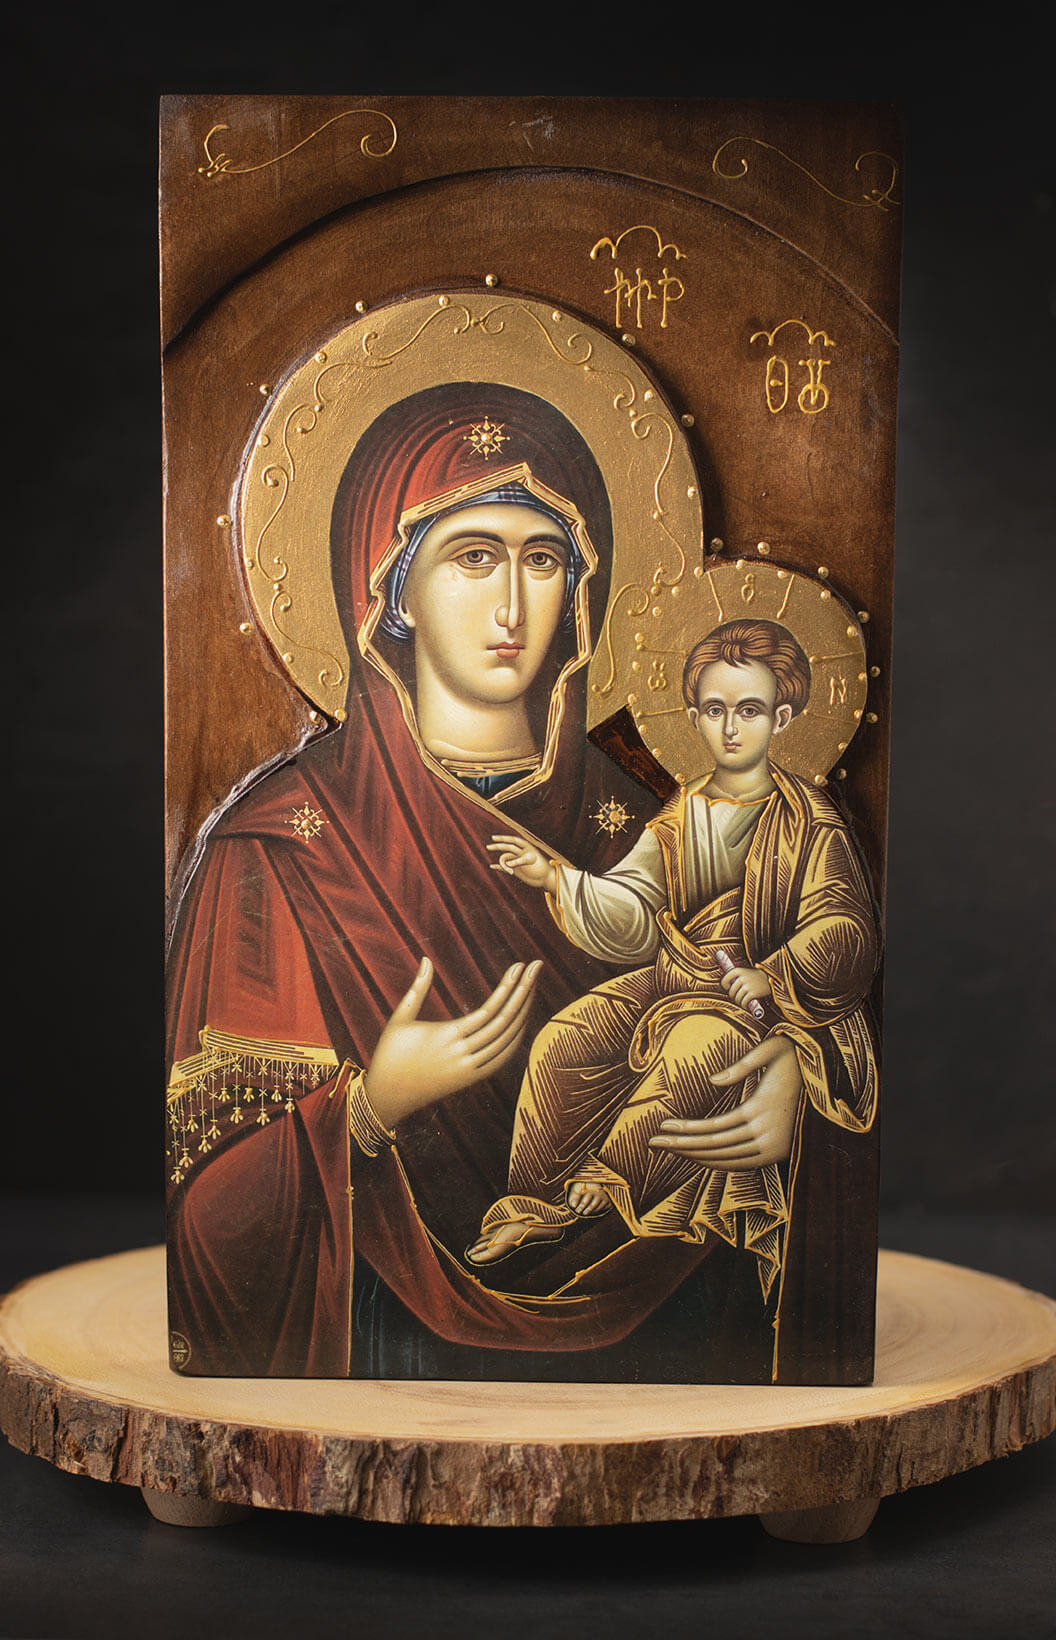 Virgin-Mary-and-Baby-Jesus-On-Wood-Board-1